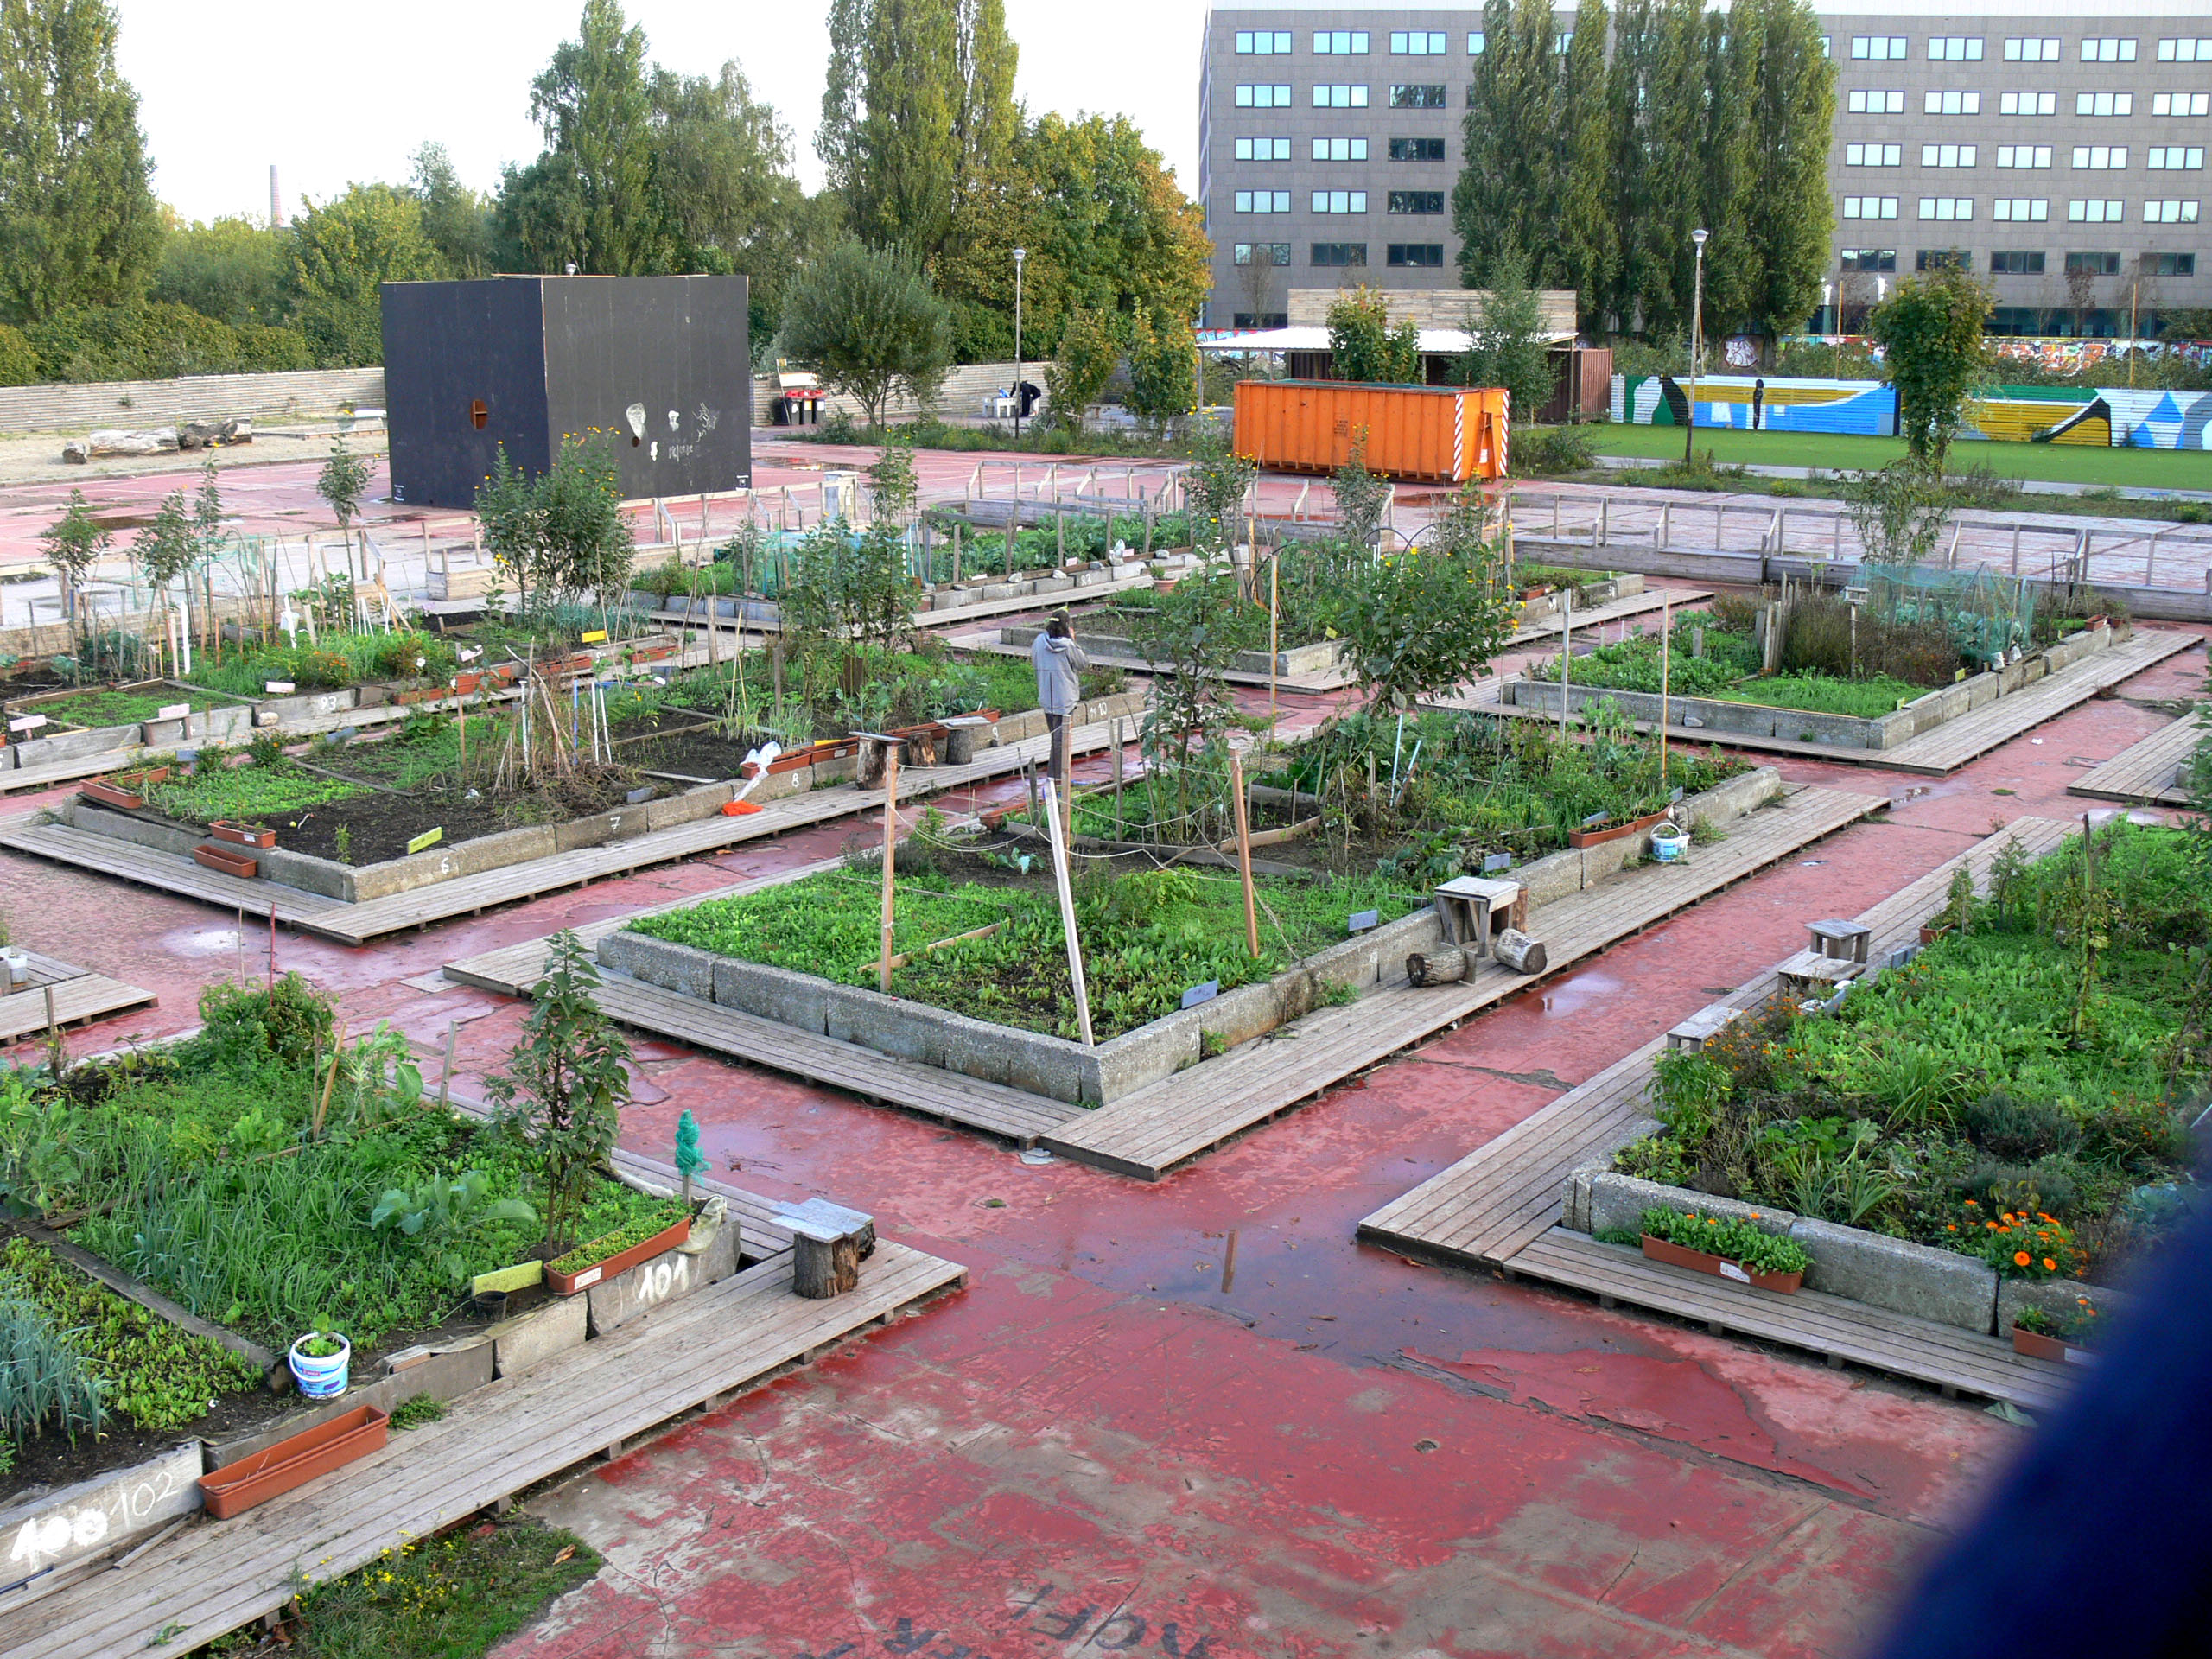 Garden plots built on old factory land in belgium city farmer news - Urban gardening in contaminated areas ...